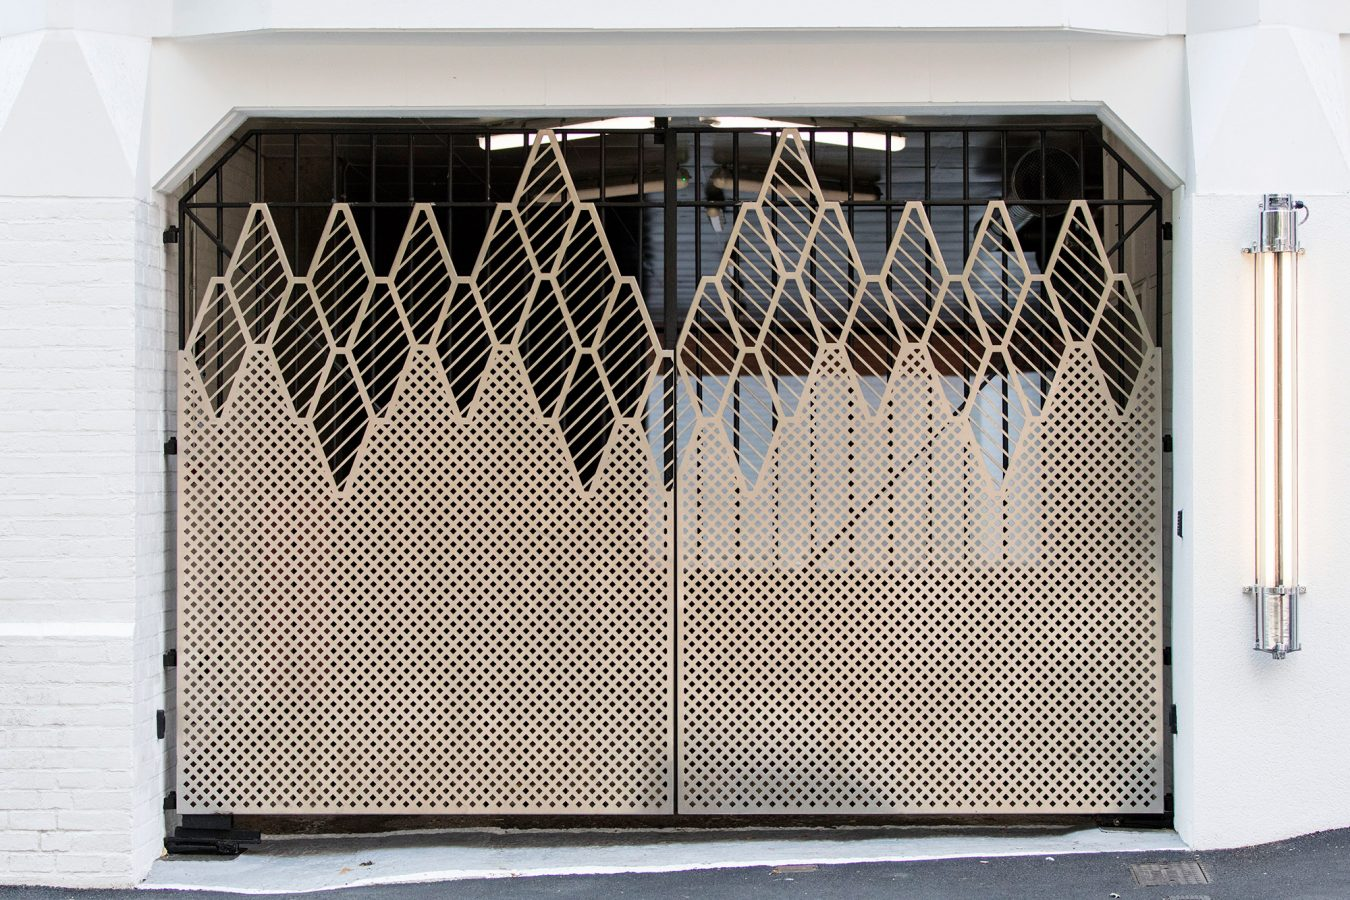 Refurbished mesh metal gates for Forbury Court in Reading